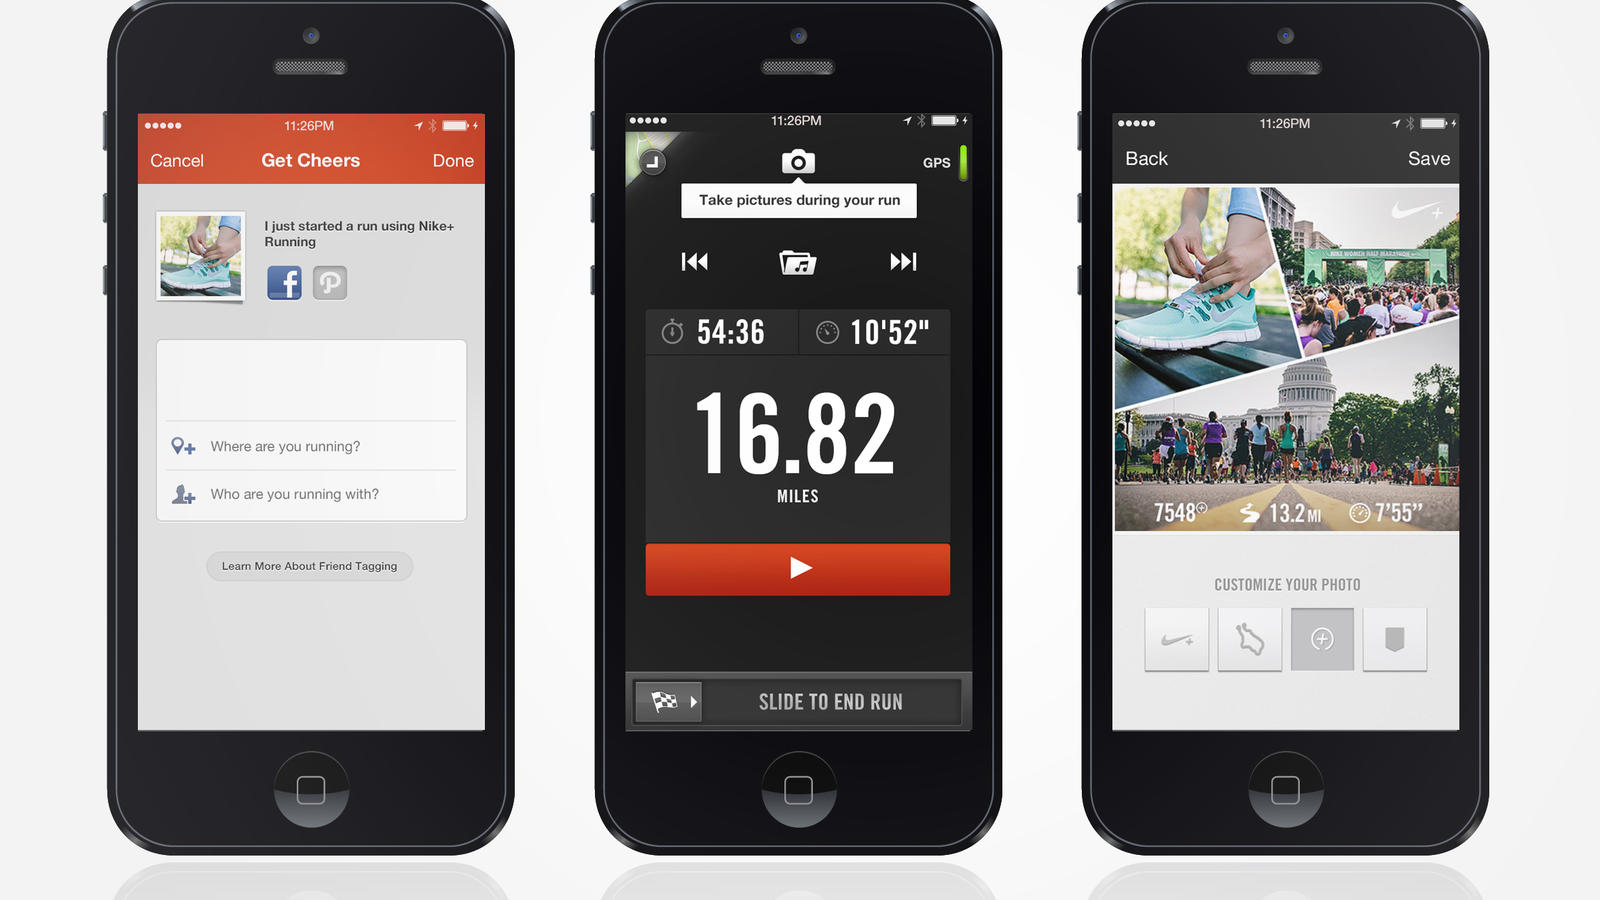 Analista Ruina Prever  Nike+ Running App Update Introduces Photo Sharing - Nike News